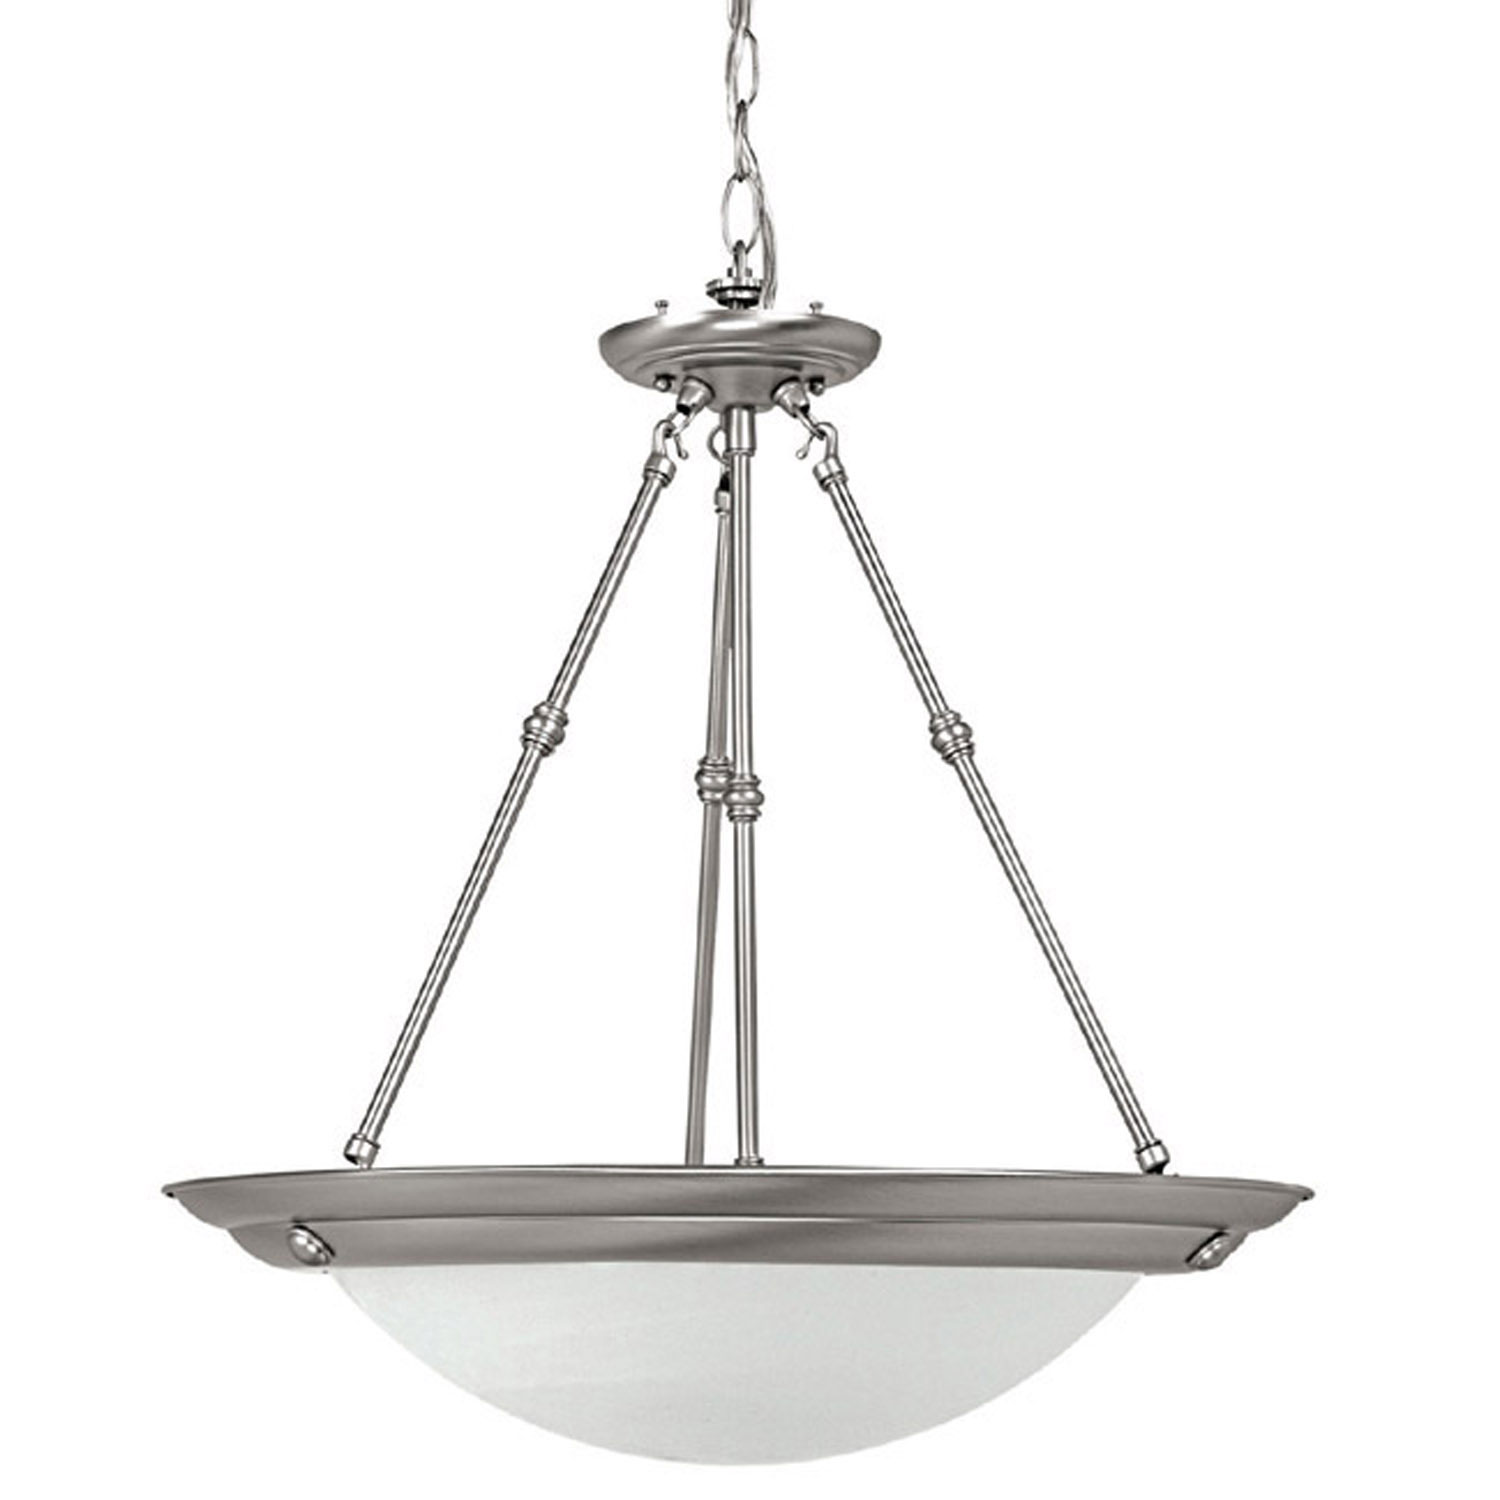 Three Light Ceiling Pendant With Canopy Kit